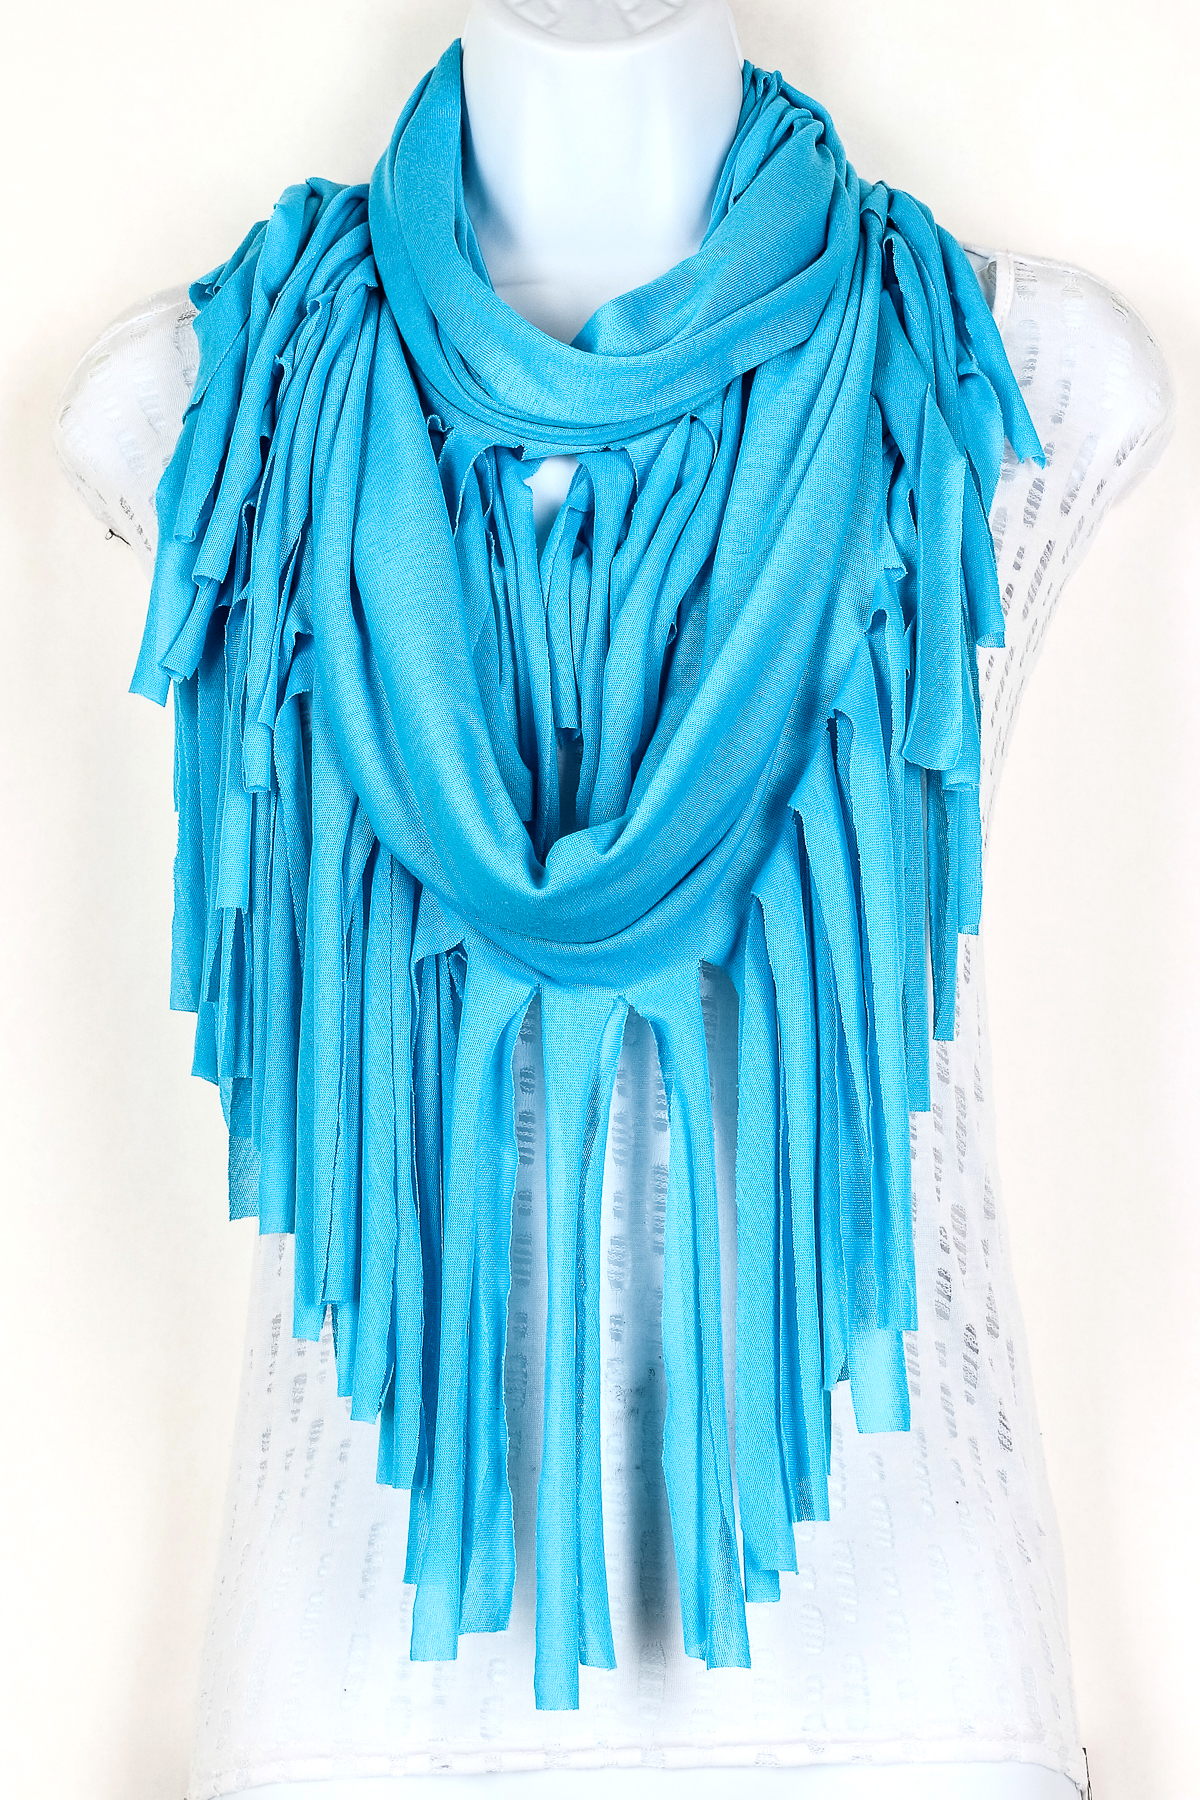 Knitting Patterns For Scarves With Fringe : Knitted Fringe Infinity Scarf - Scarves